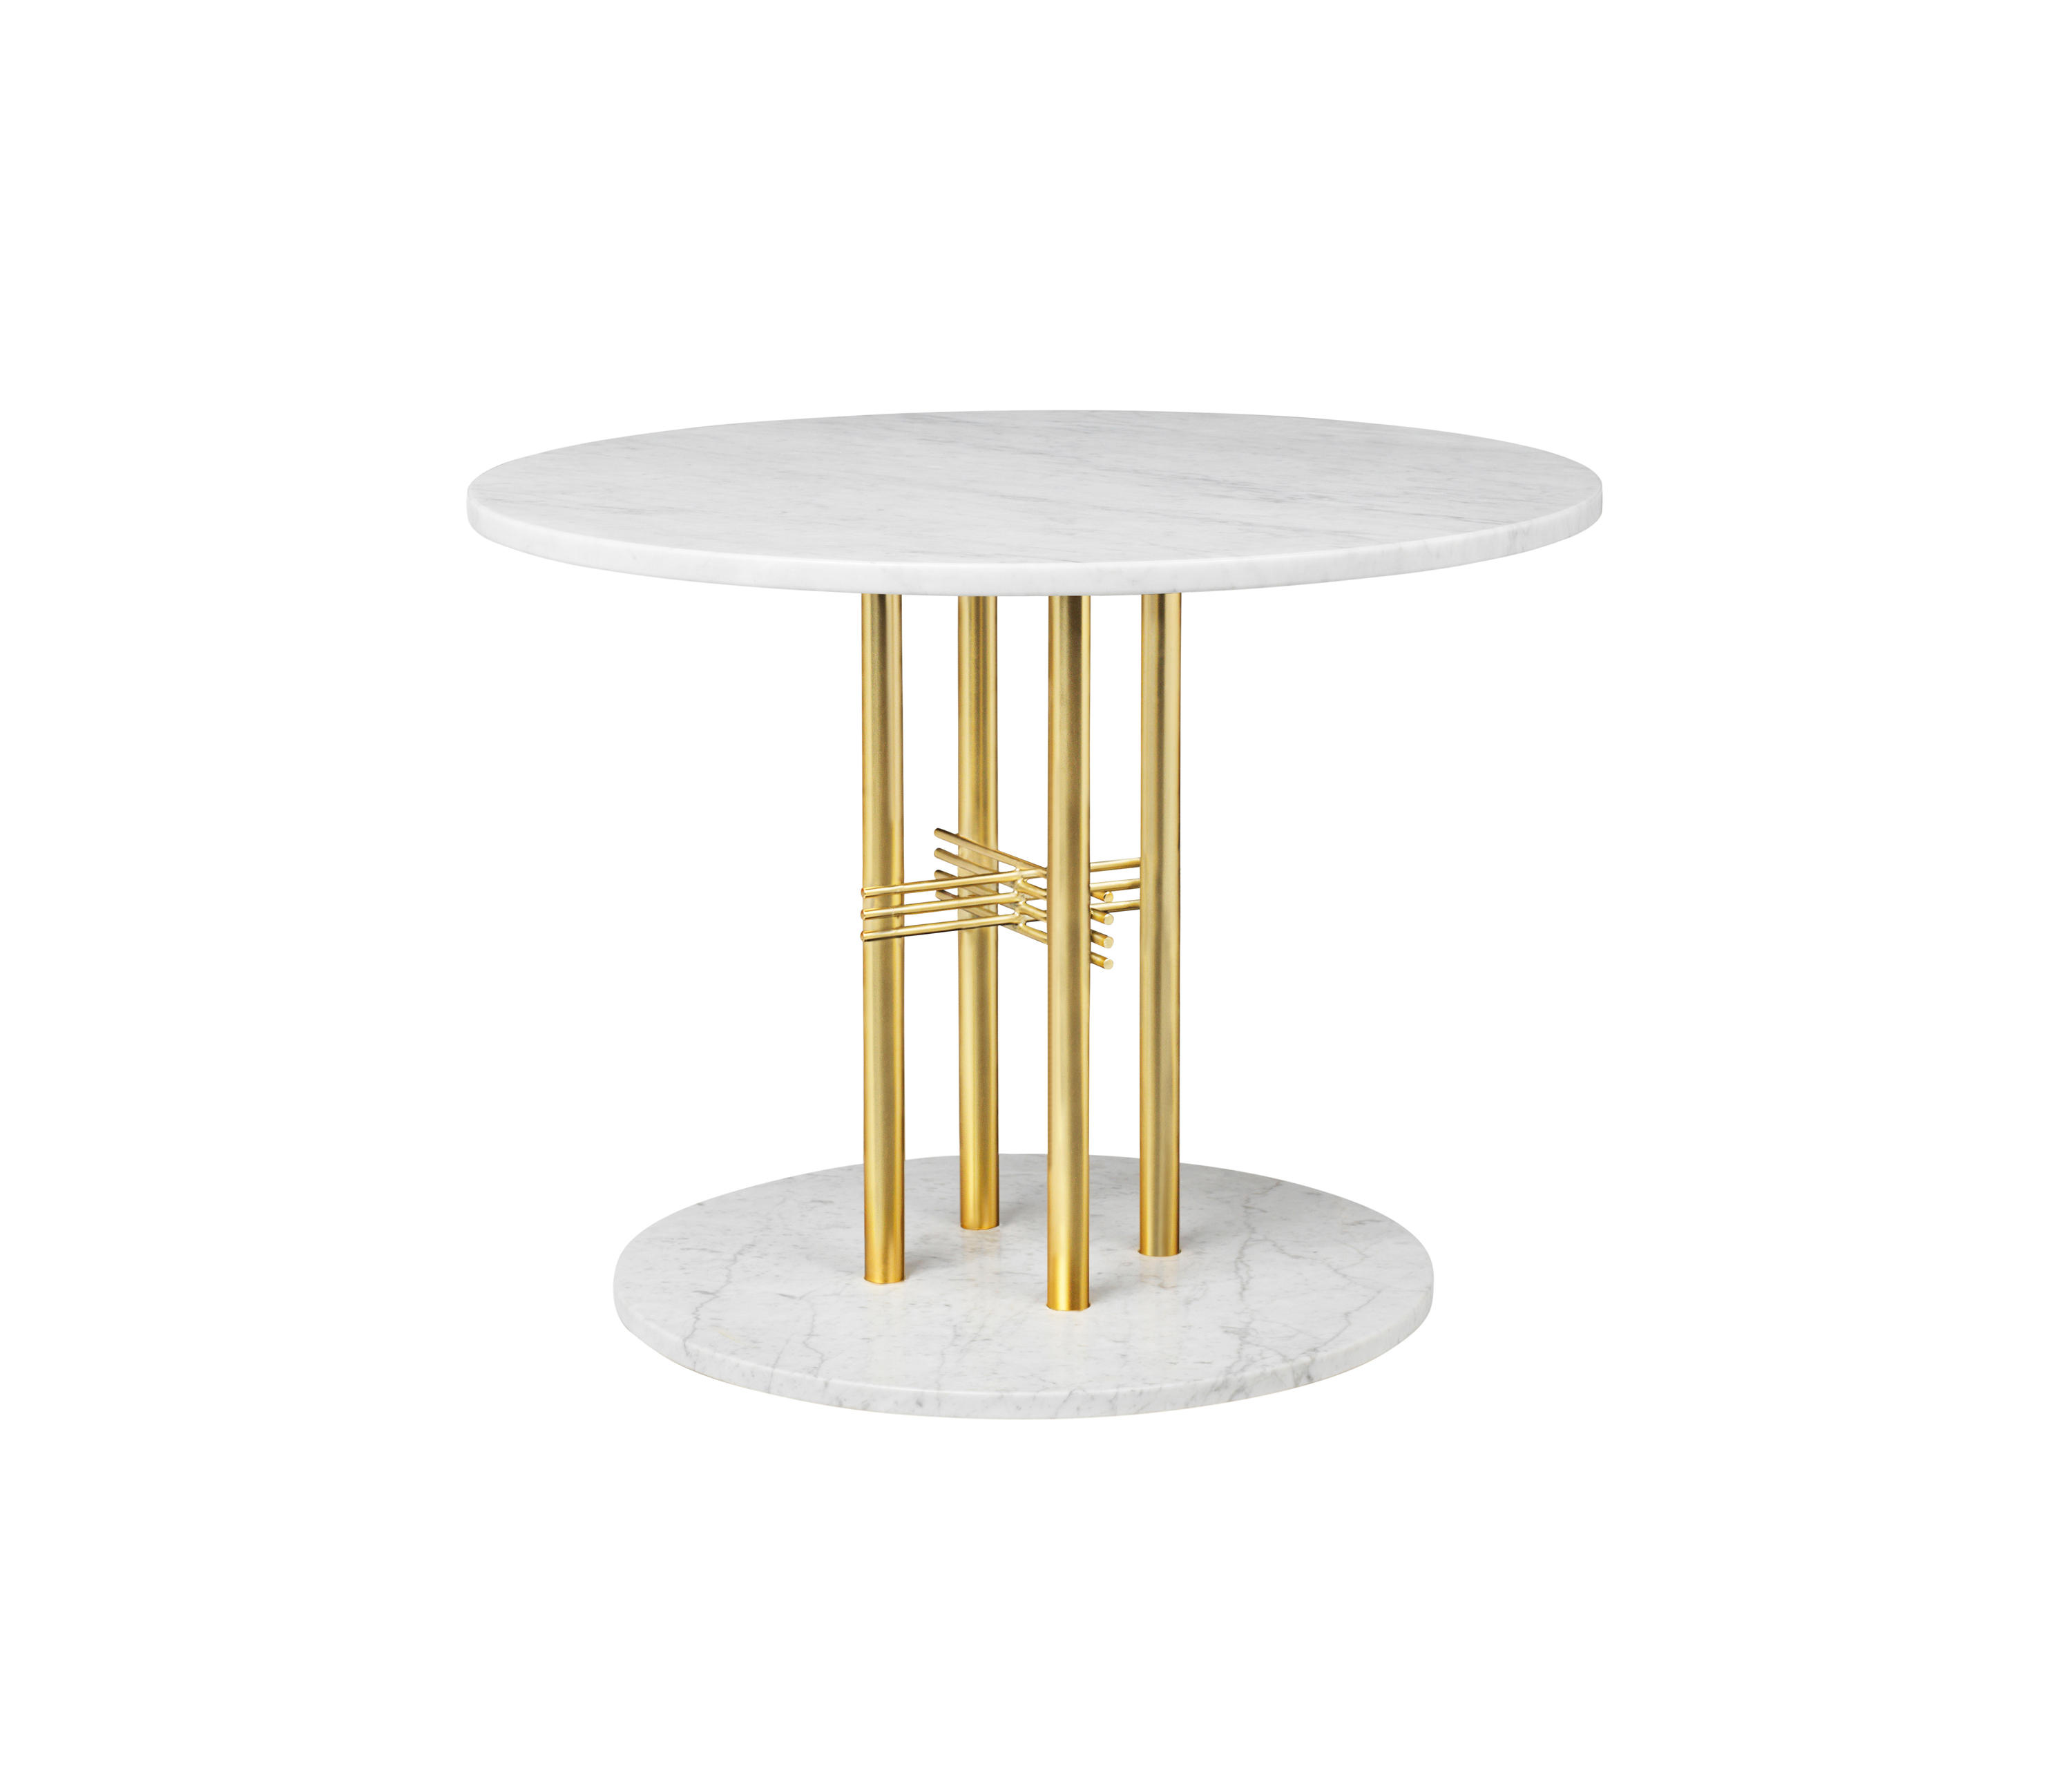 Ypperlig TS COLUMN LOUNGE TABLE Ø80 - Side tables from GUBI | Architonic WV-88